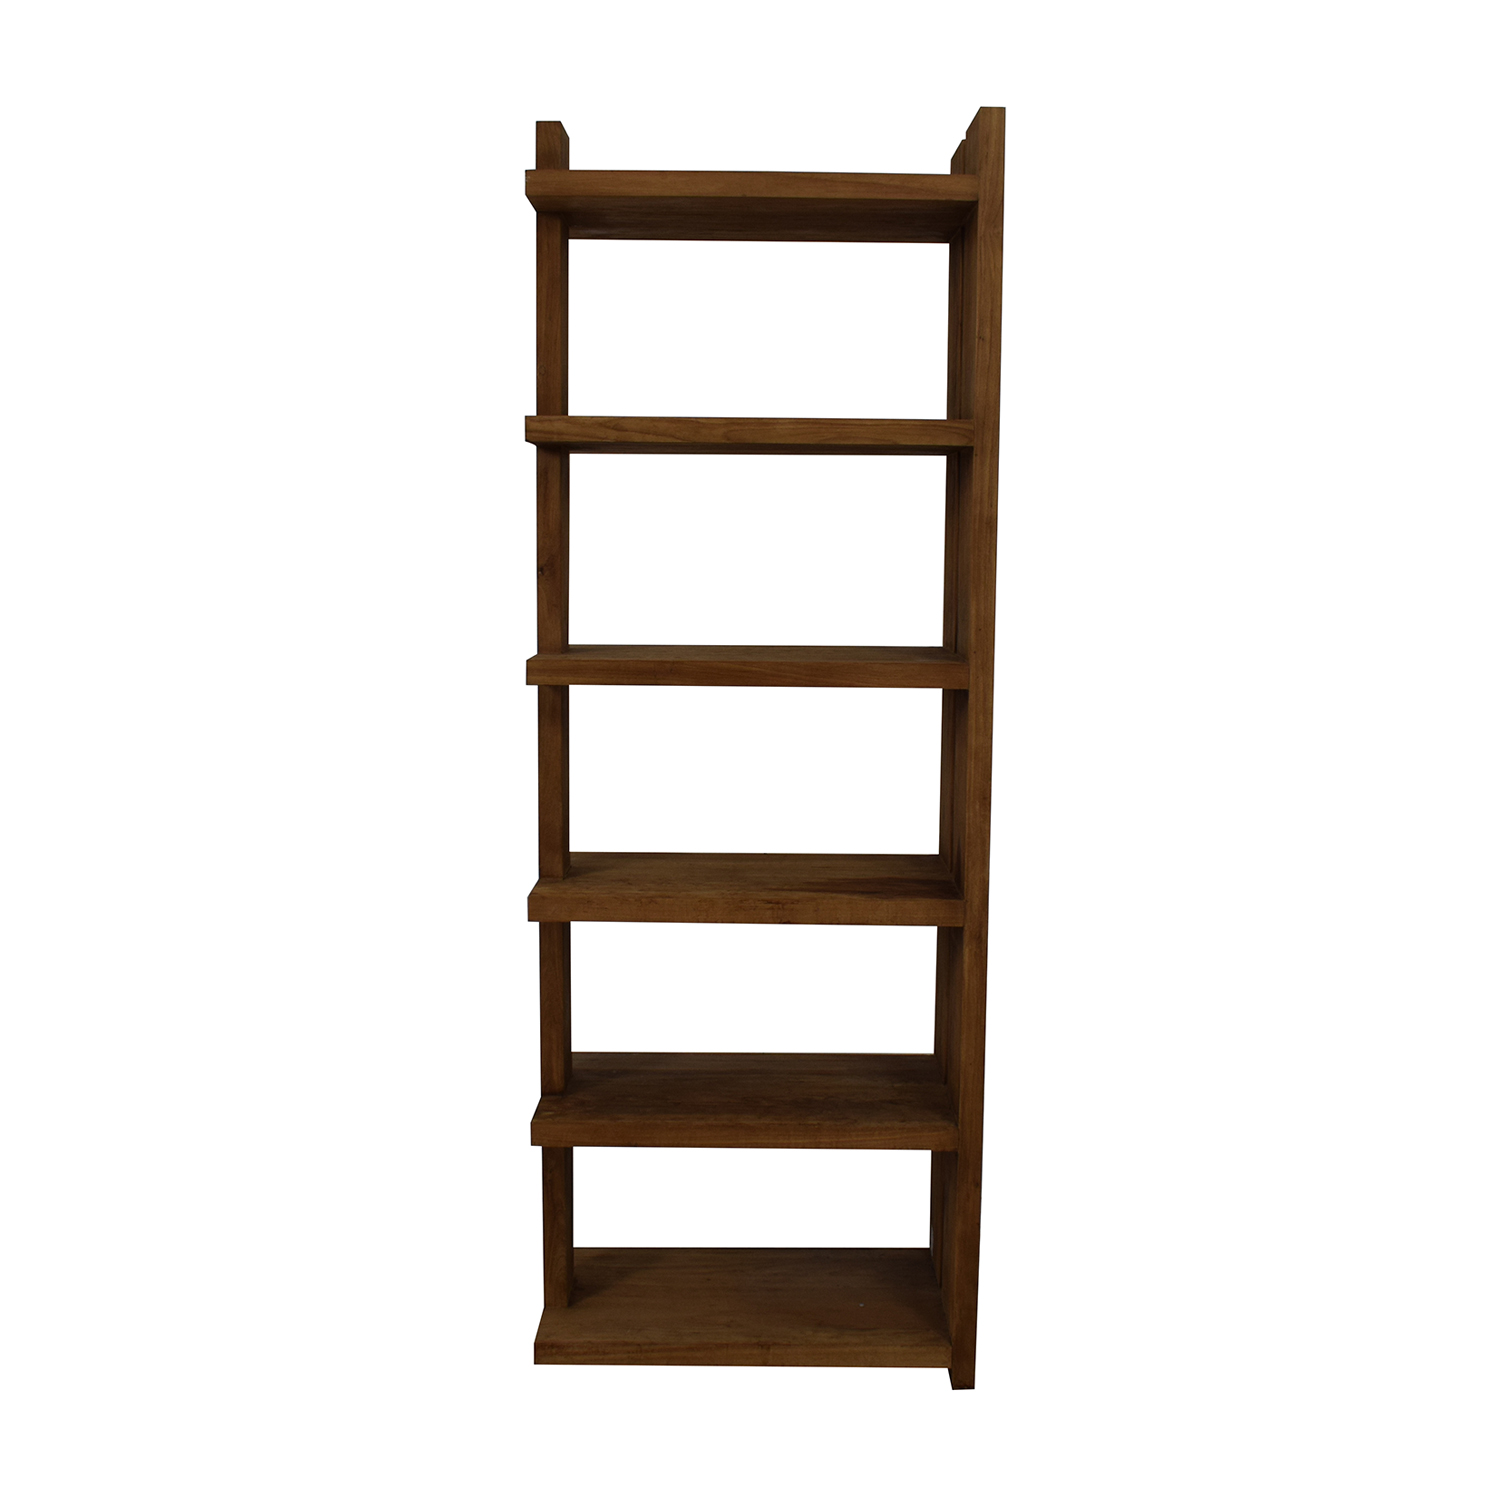 ABC Carpet & Home ABC Carpet & Home Harmony Etagere Bookcases used